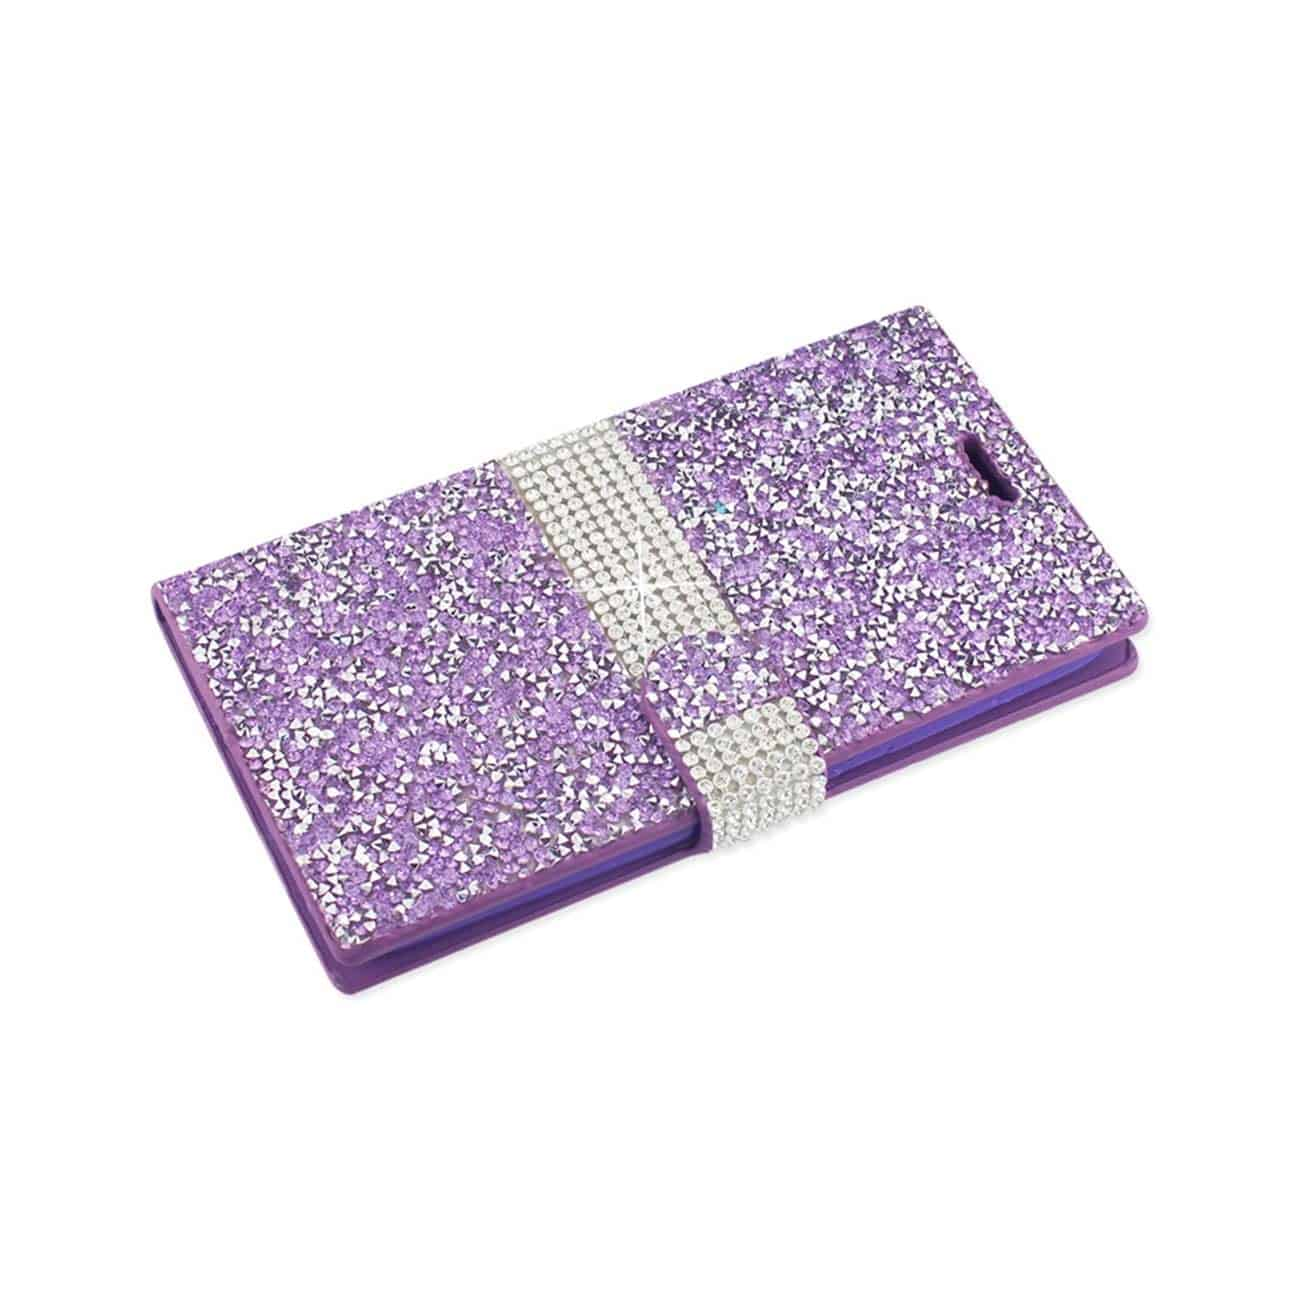 ZTE GRAND X MAX 2 JEWELRY RHINESTONE WALLET CASE IN PURPLE